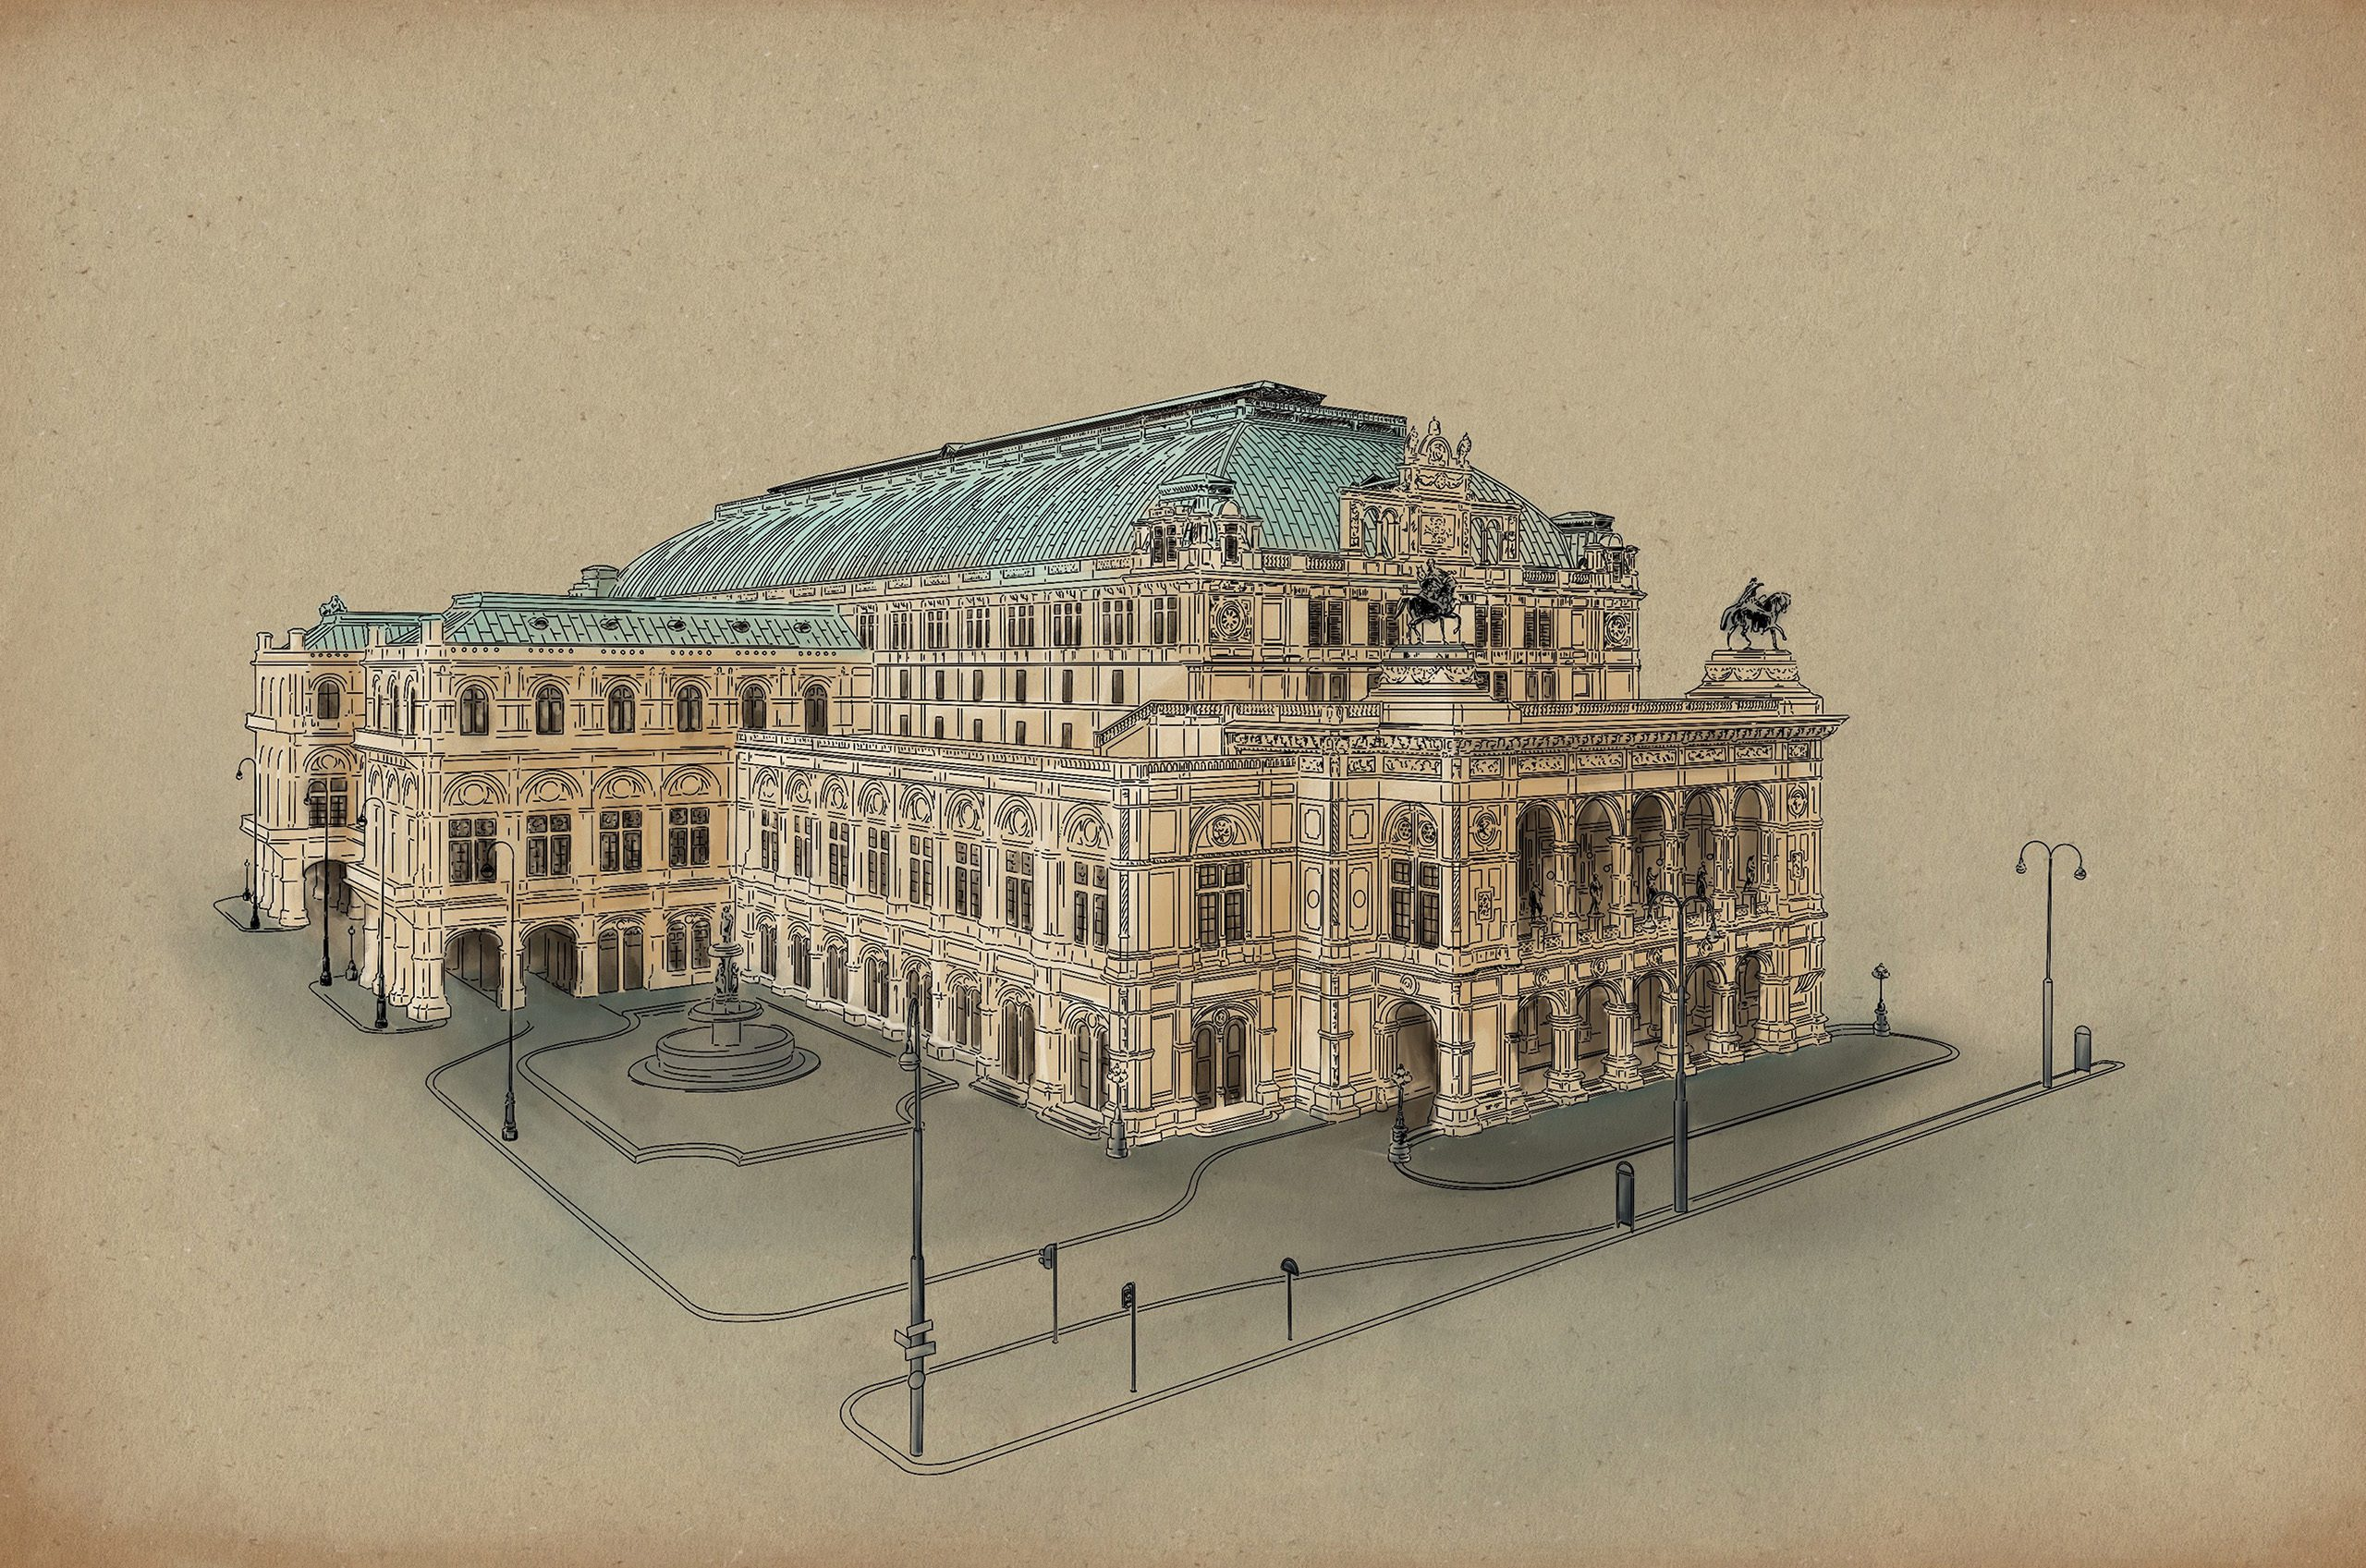 vienna state opera illustration